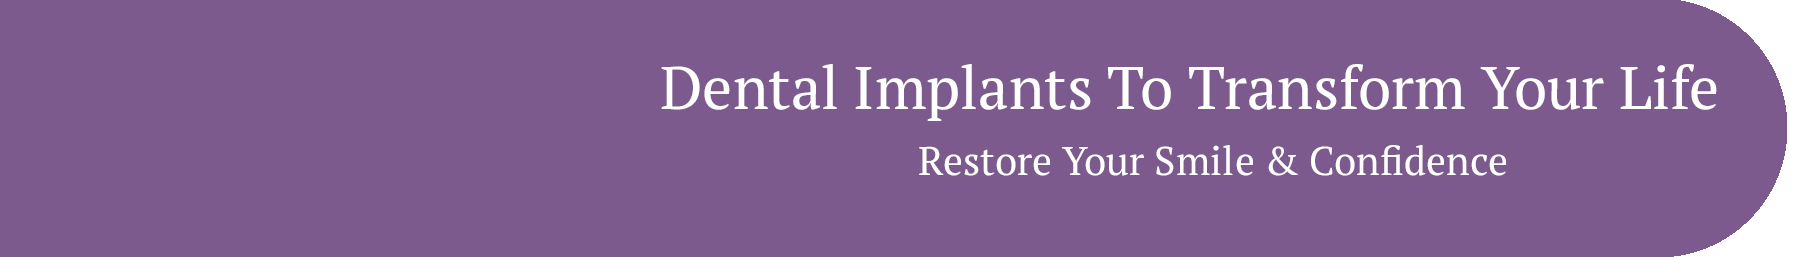 dental implants to transform your life